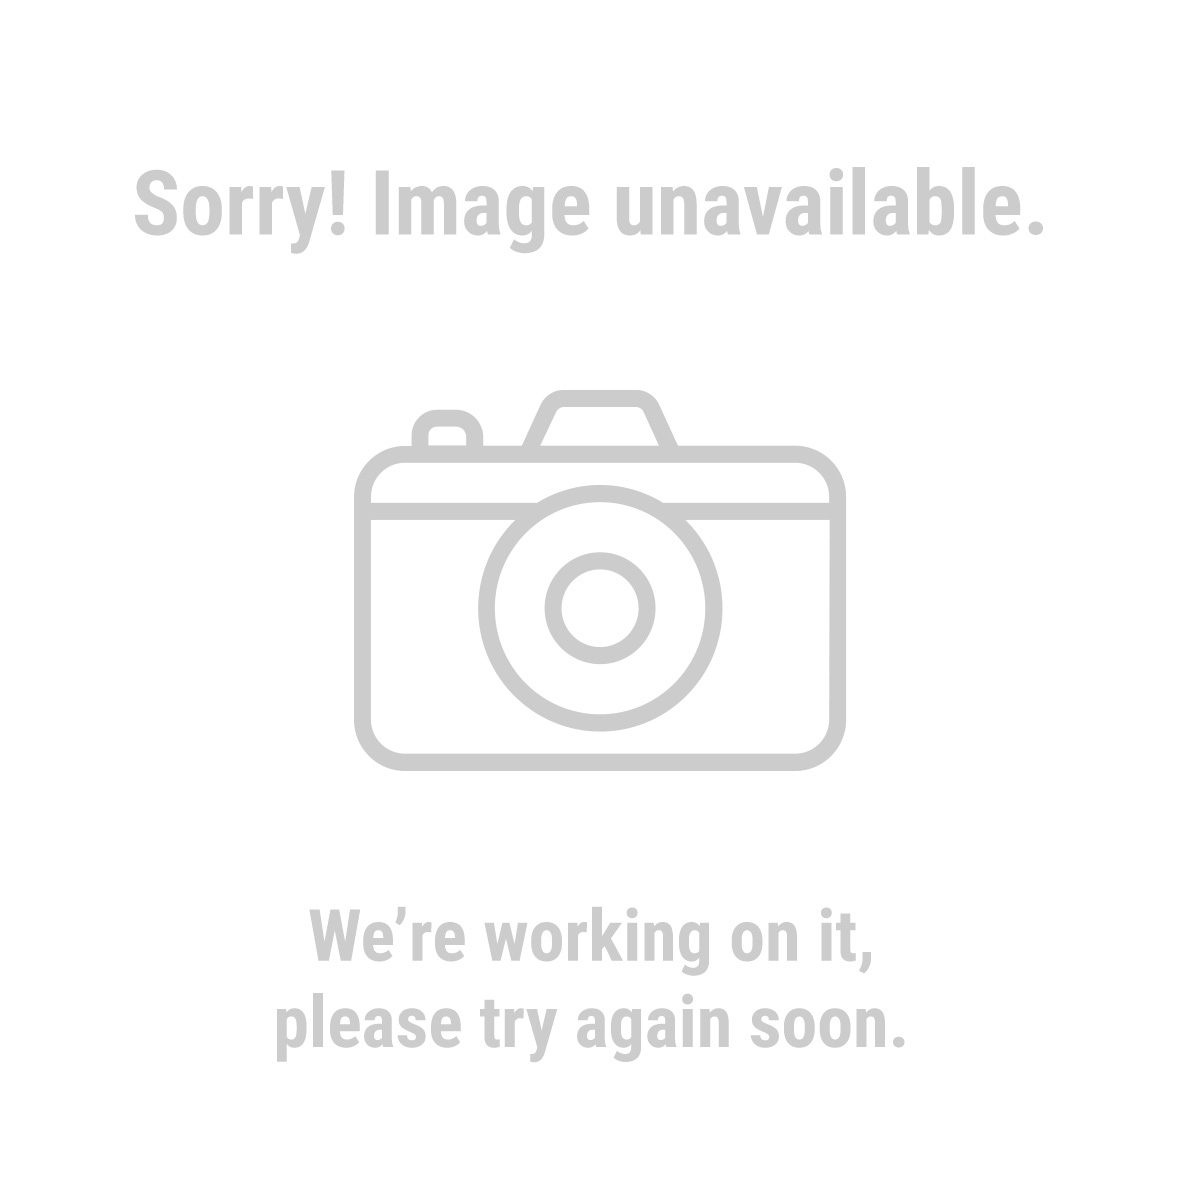 Central Machinery Lathe Owners Manuals